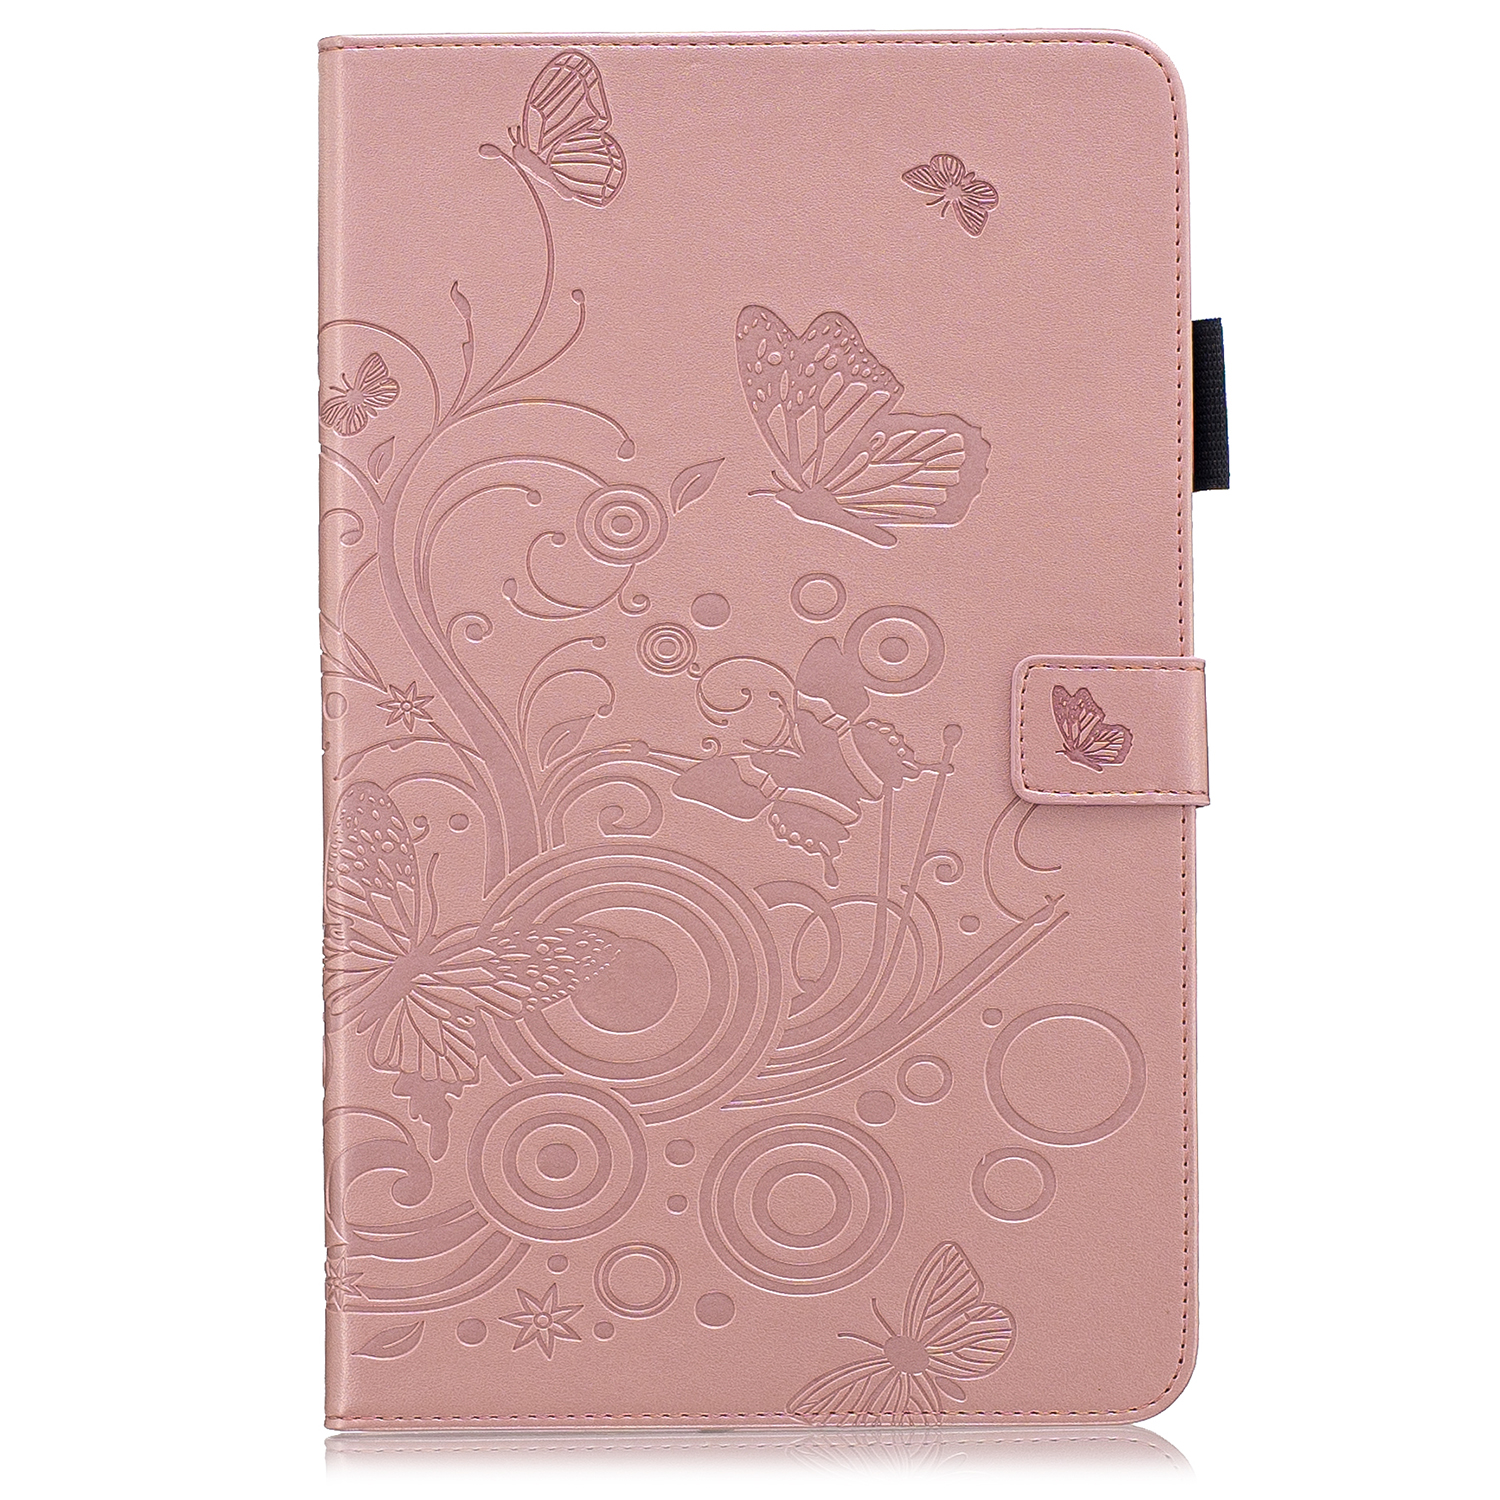 Butterfly Flower Case For Samsung Galaxy Tab A 10.1 2019 T510 T515 Stand Leather Cover For SM-T510 SM-T515 TAB A10.1 Inch Cover